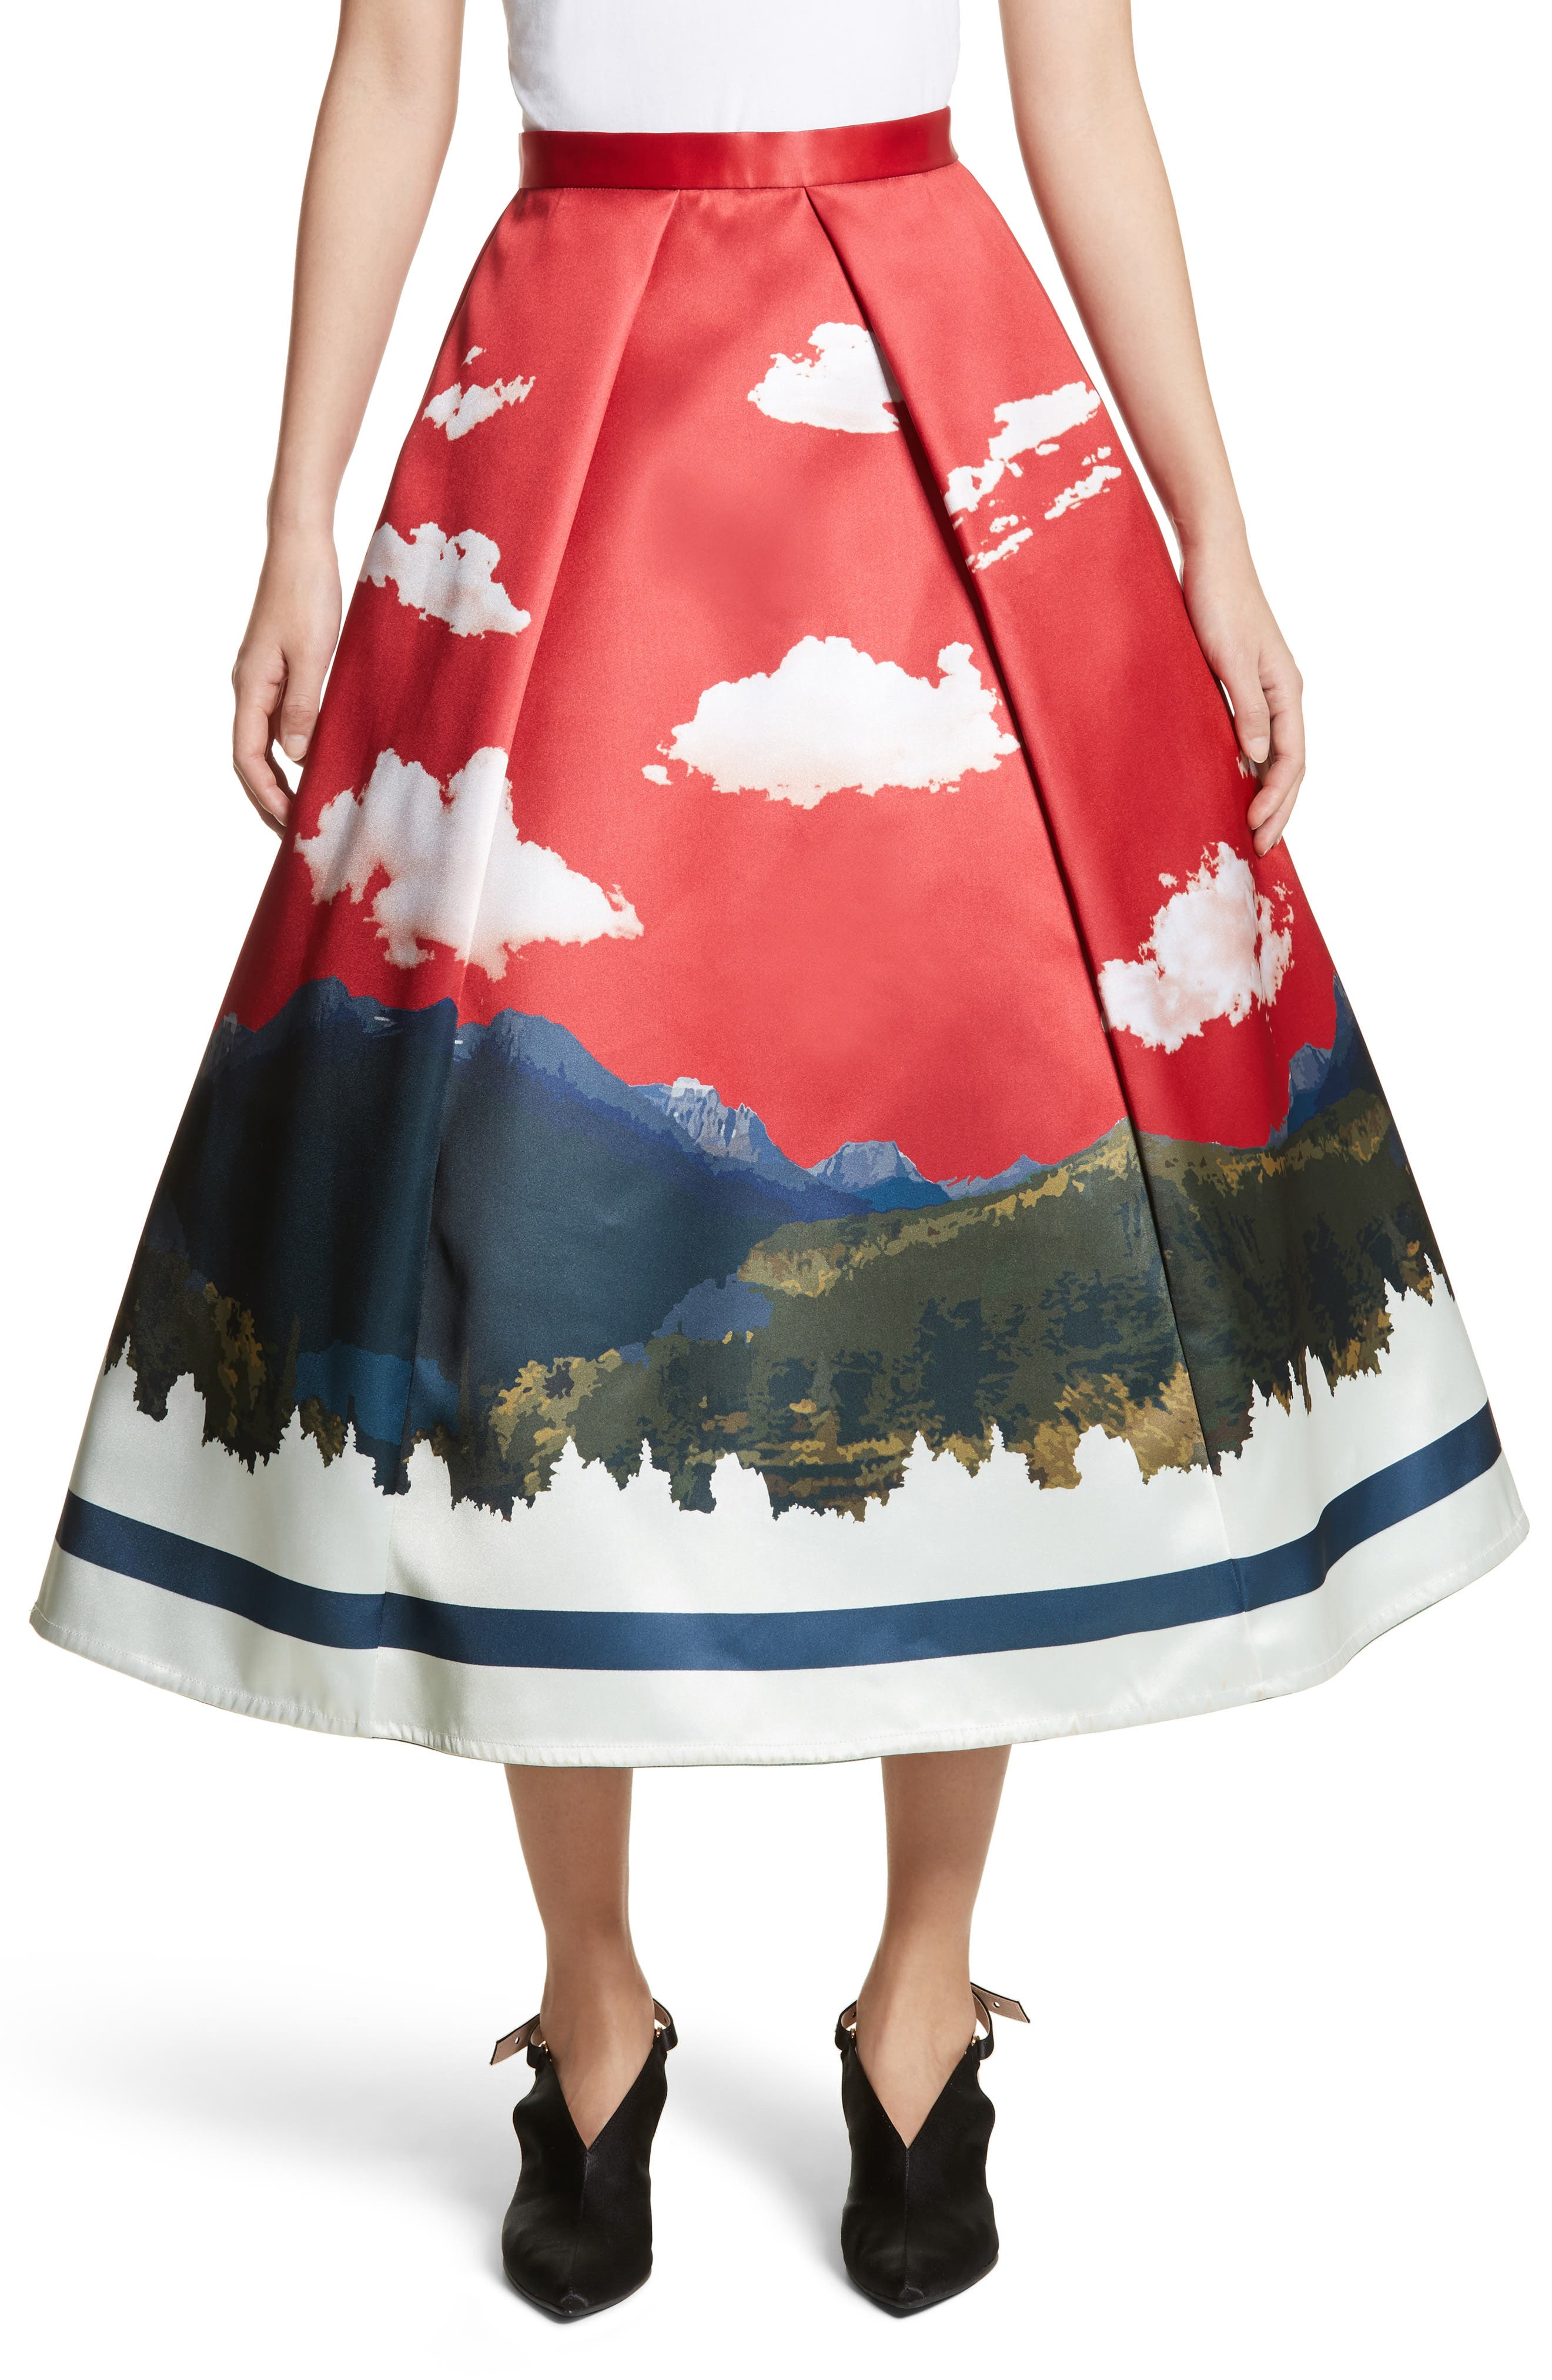 Day/Night Reversible Skirt,                             Main thumbnail 1, color,                             Red/ Black